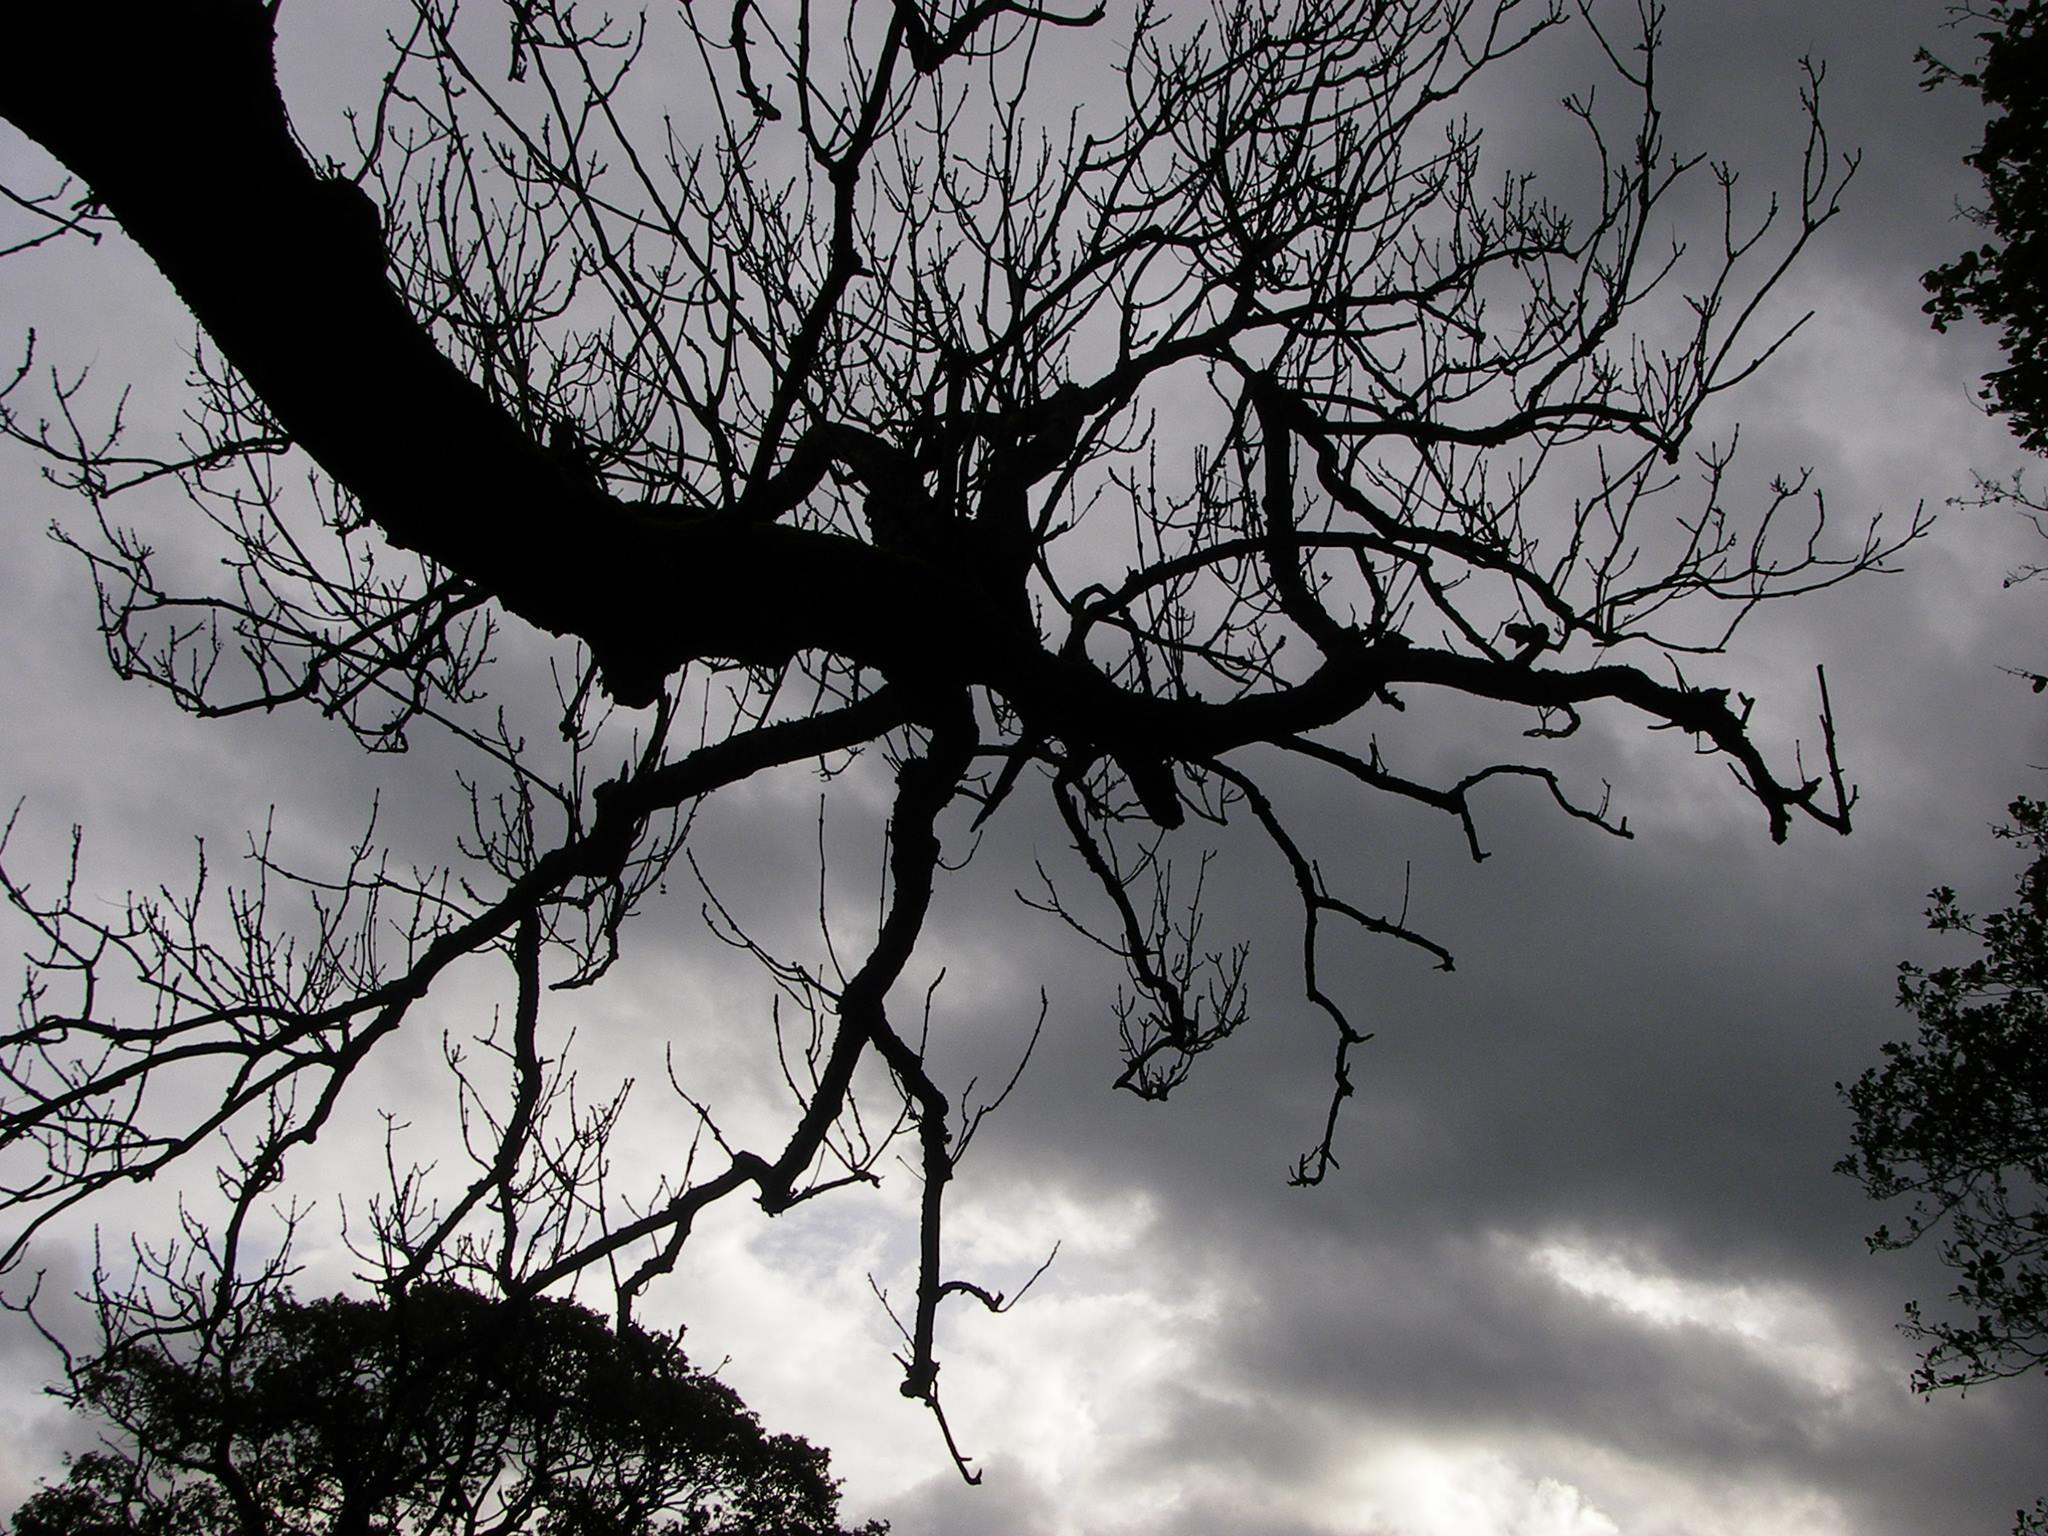 CAMERA CLUB:  Spooky Tree under darks clouds on the shores of Bassenthwaite. SUBMITTED. Liz Pennington. 5 November 2018.